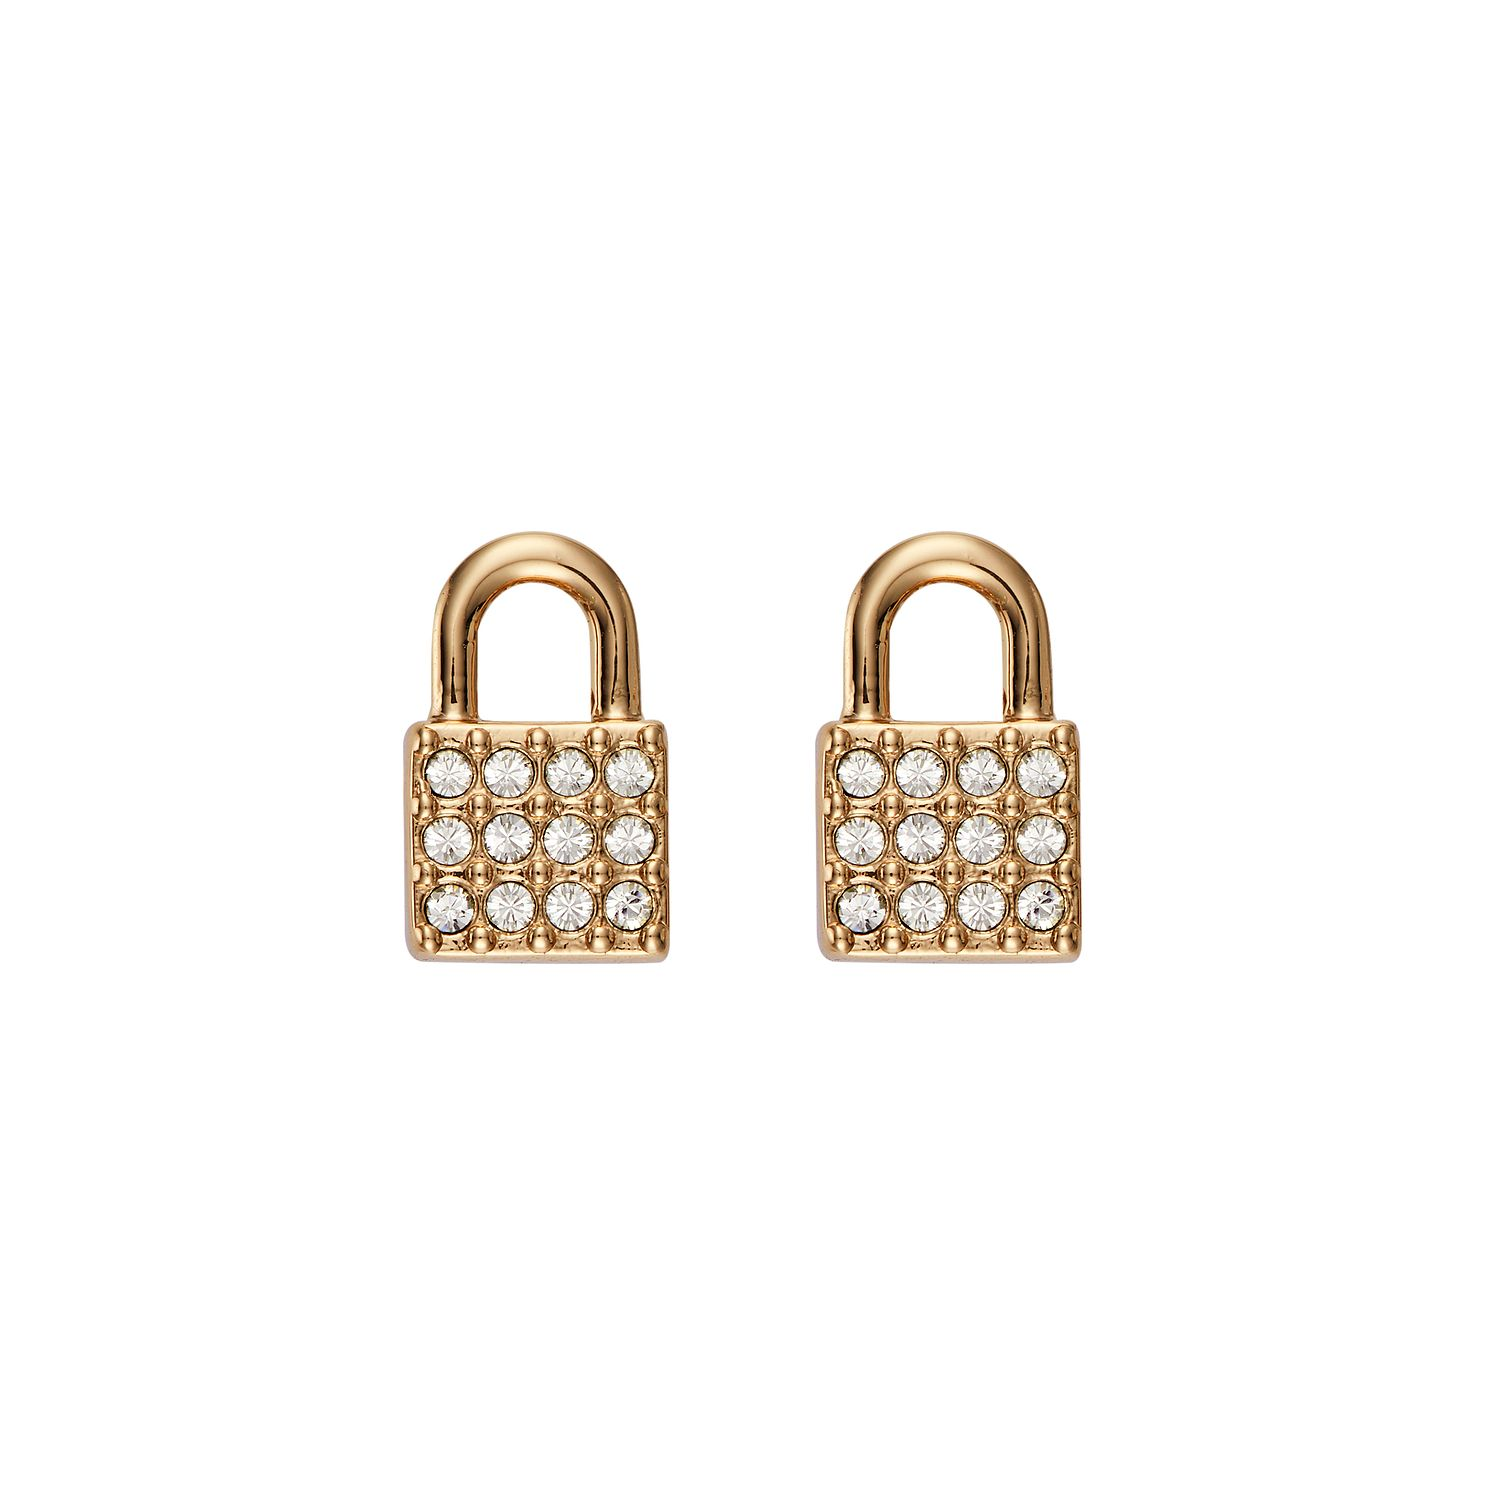 DKNY Padlock Yellow Gold Plated Crystal Stud Earrings - Product number 5888468